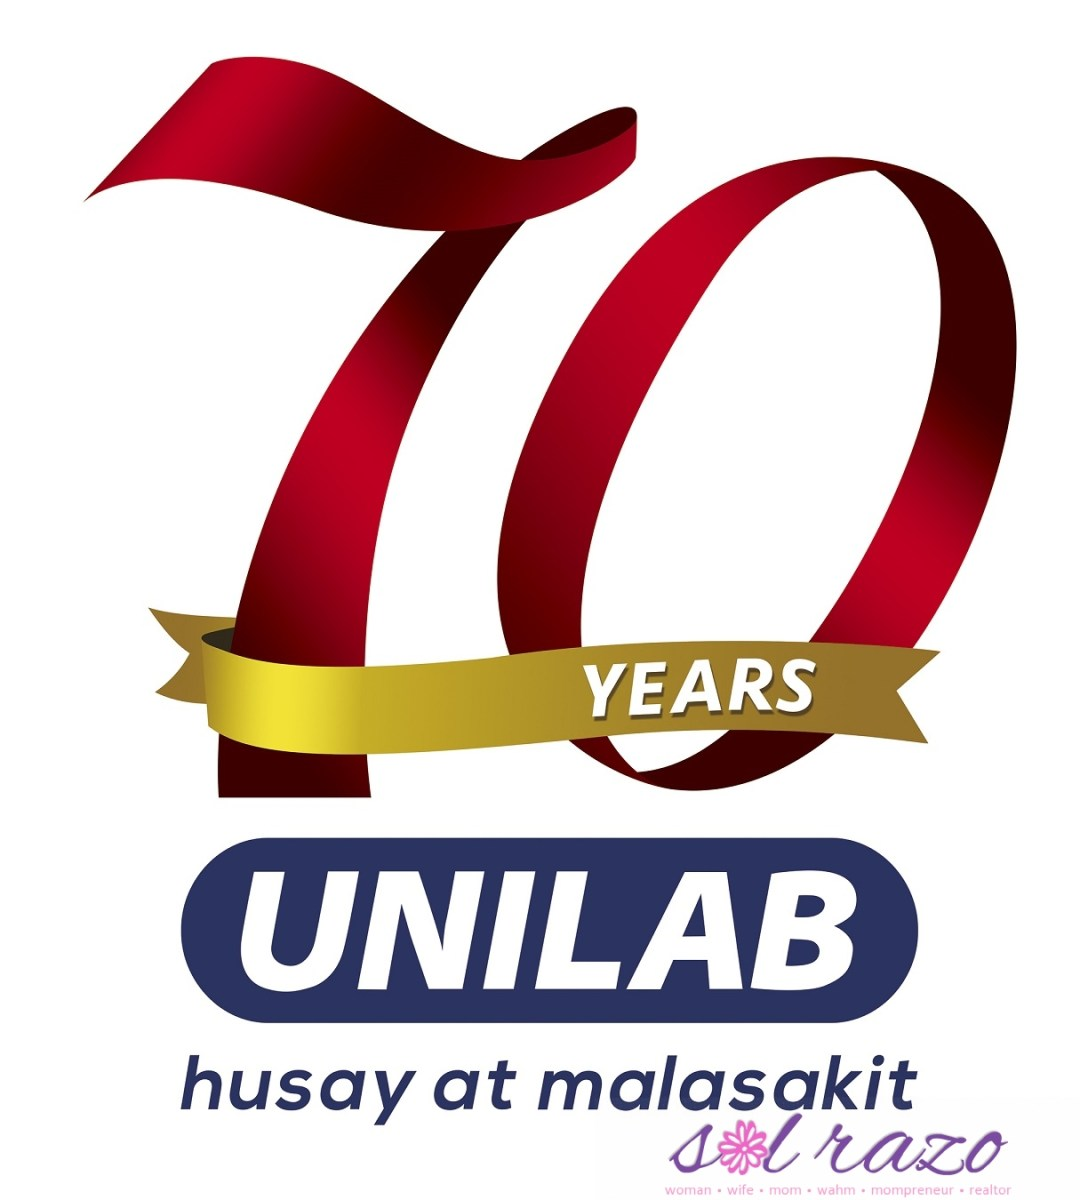 Unilab marks 70th anniversary, ennobles unsung heroes